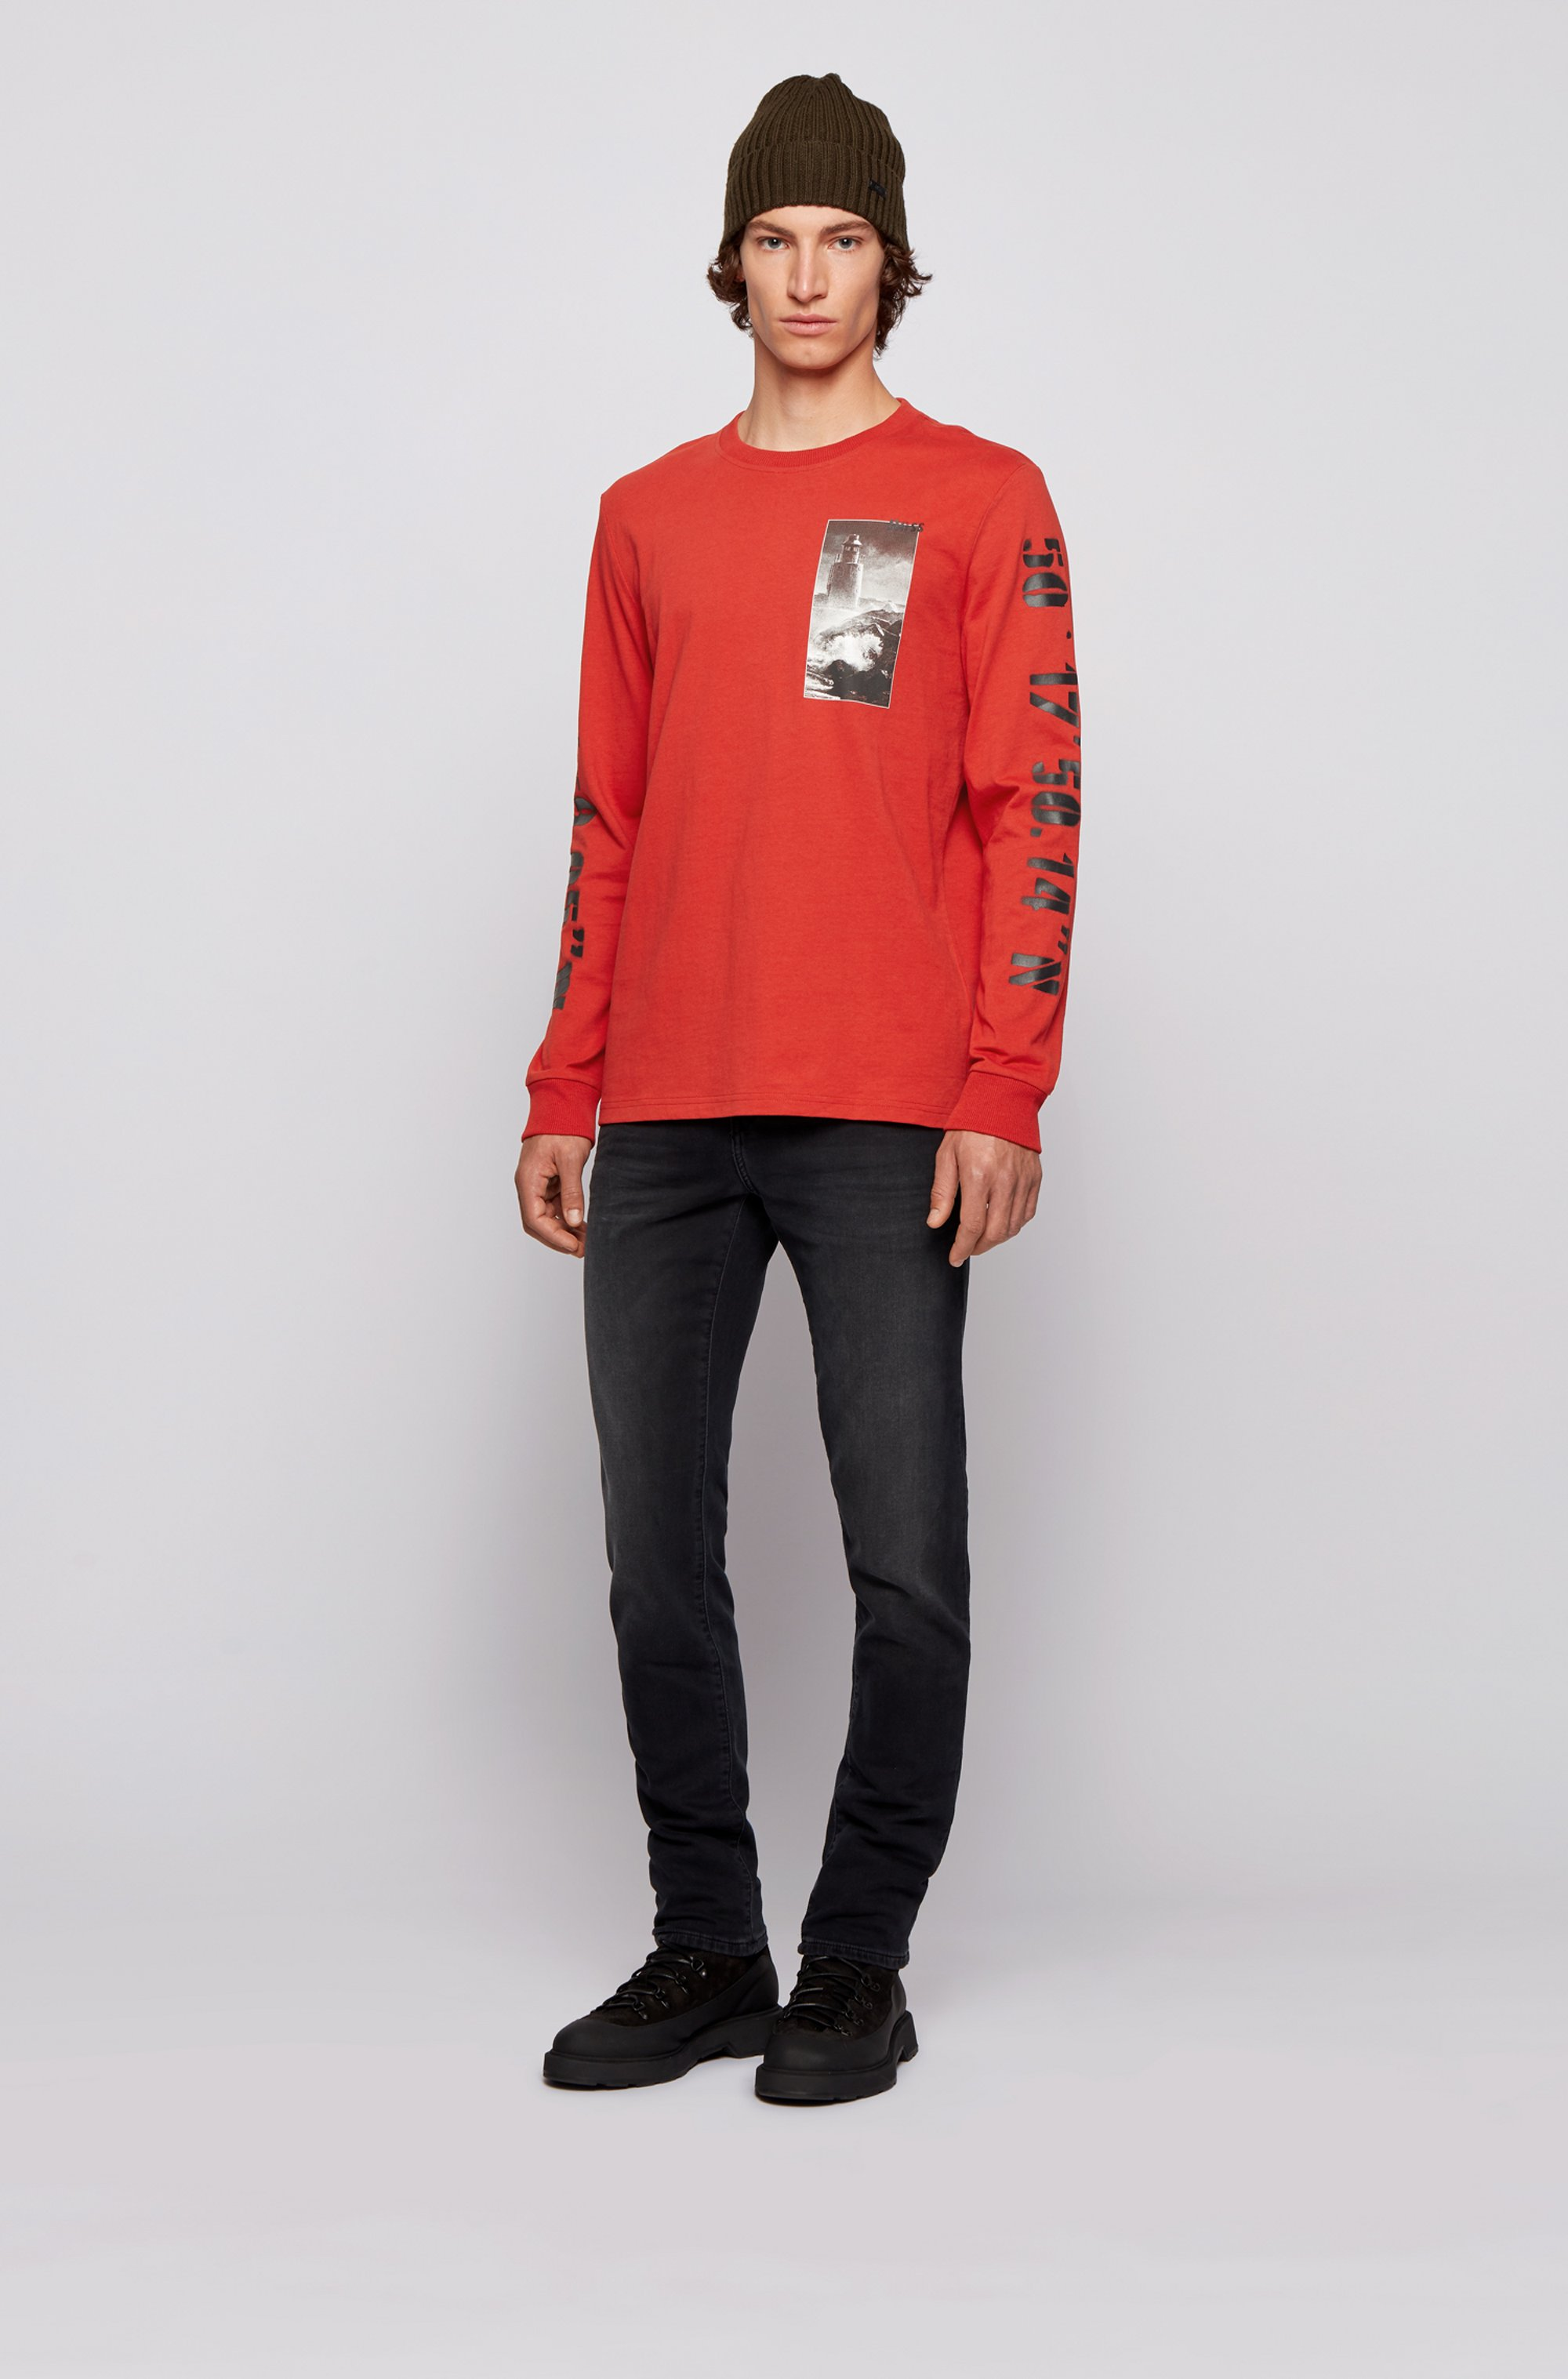 Long-sleeved relaxed-fit T-shirt with coastal prints